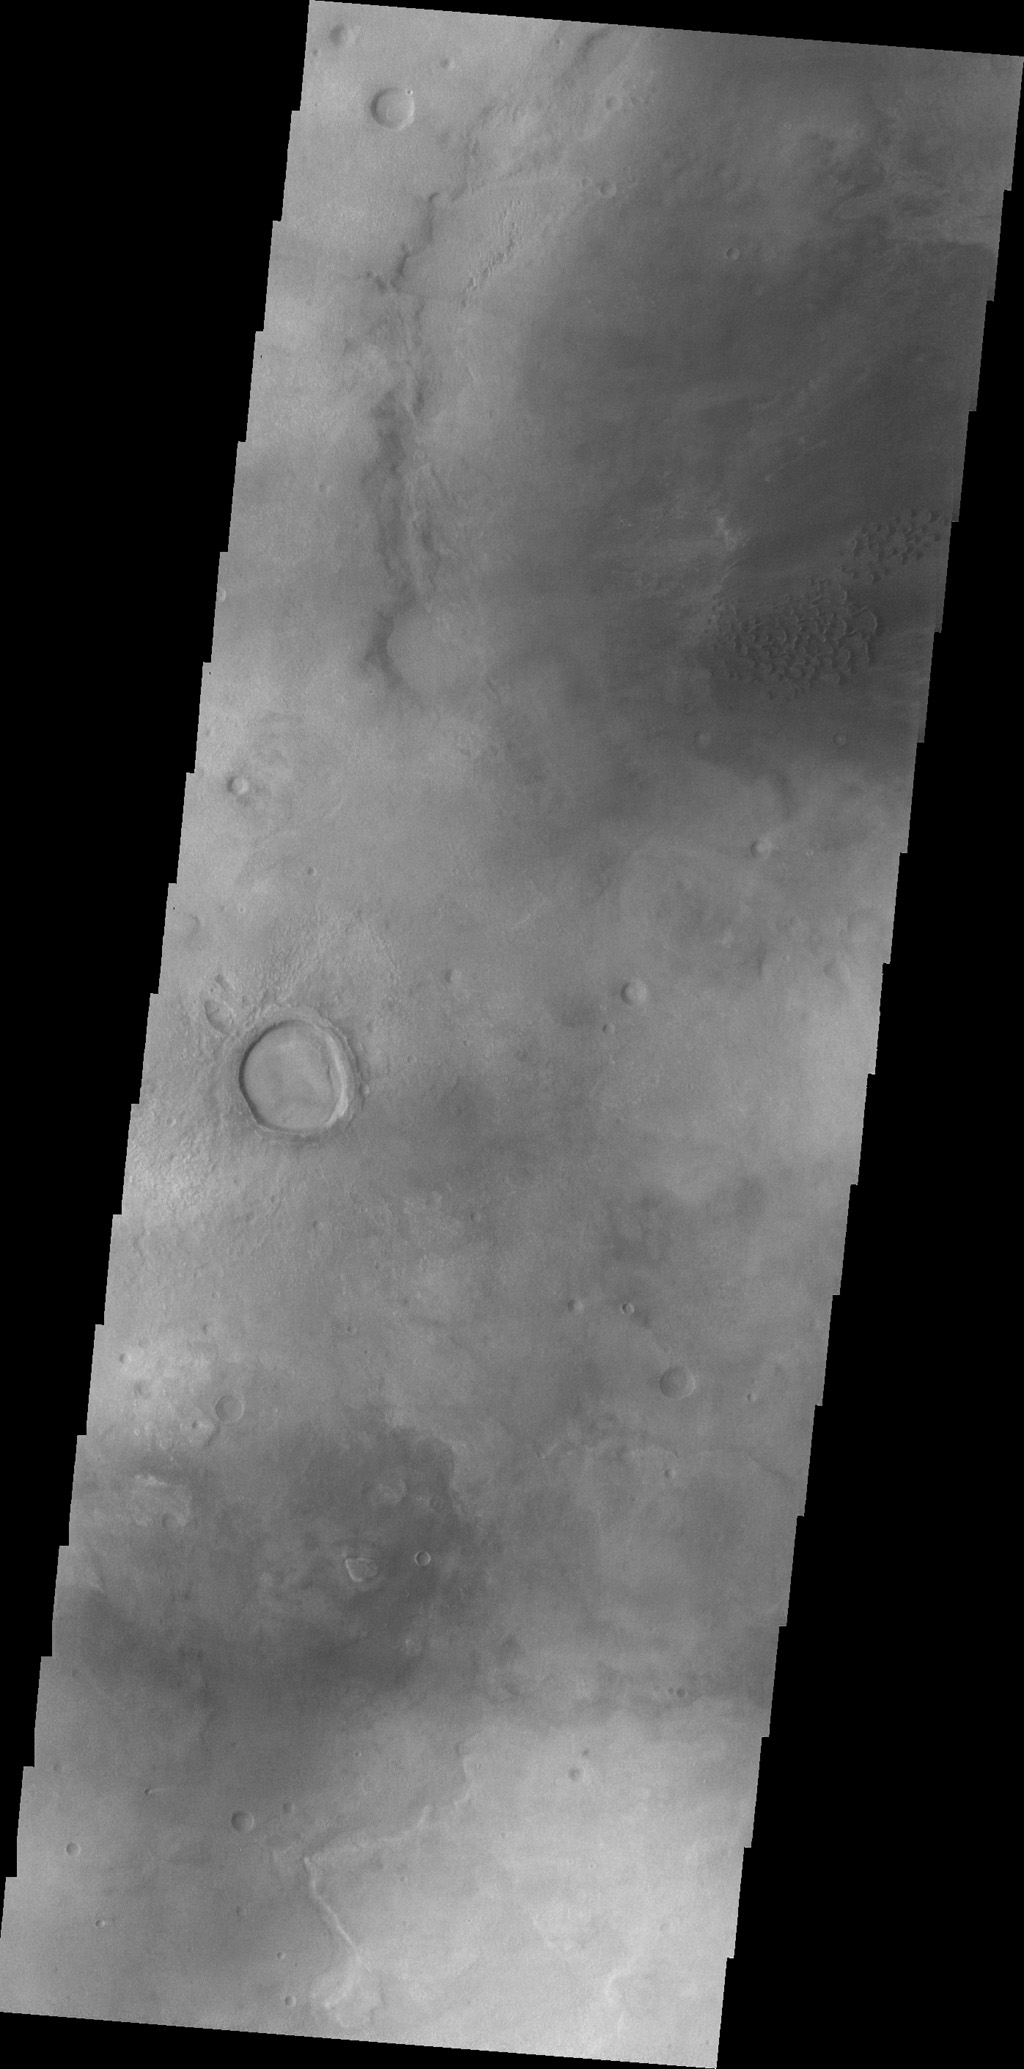 As seen by NASA's 2001 Mars Odyssey spacecraft, the dunes in this image are located on the western margin of Hellas Planitia.